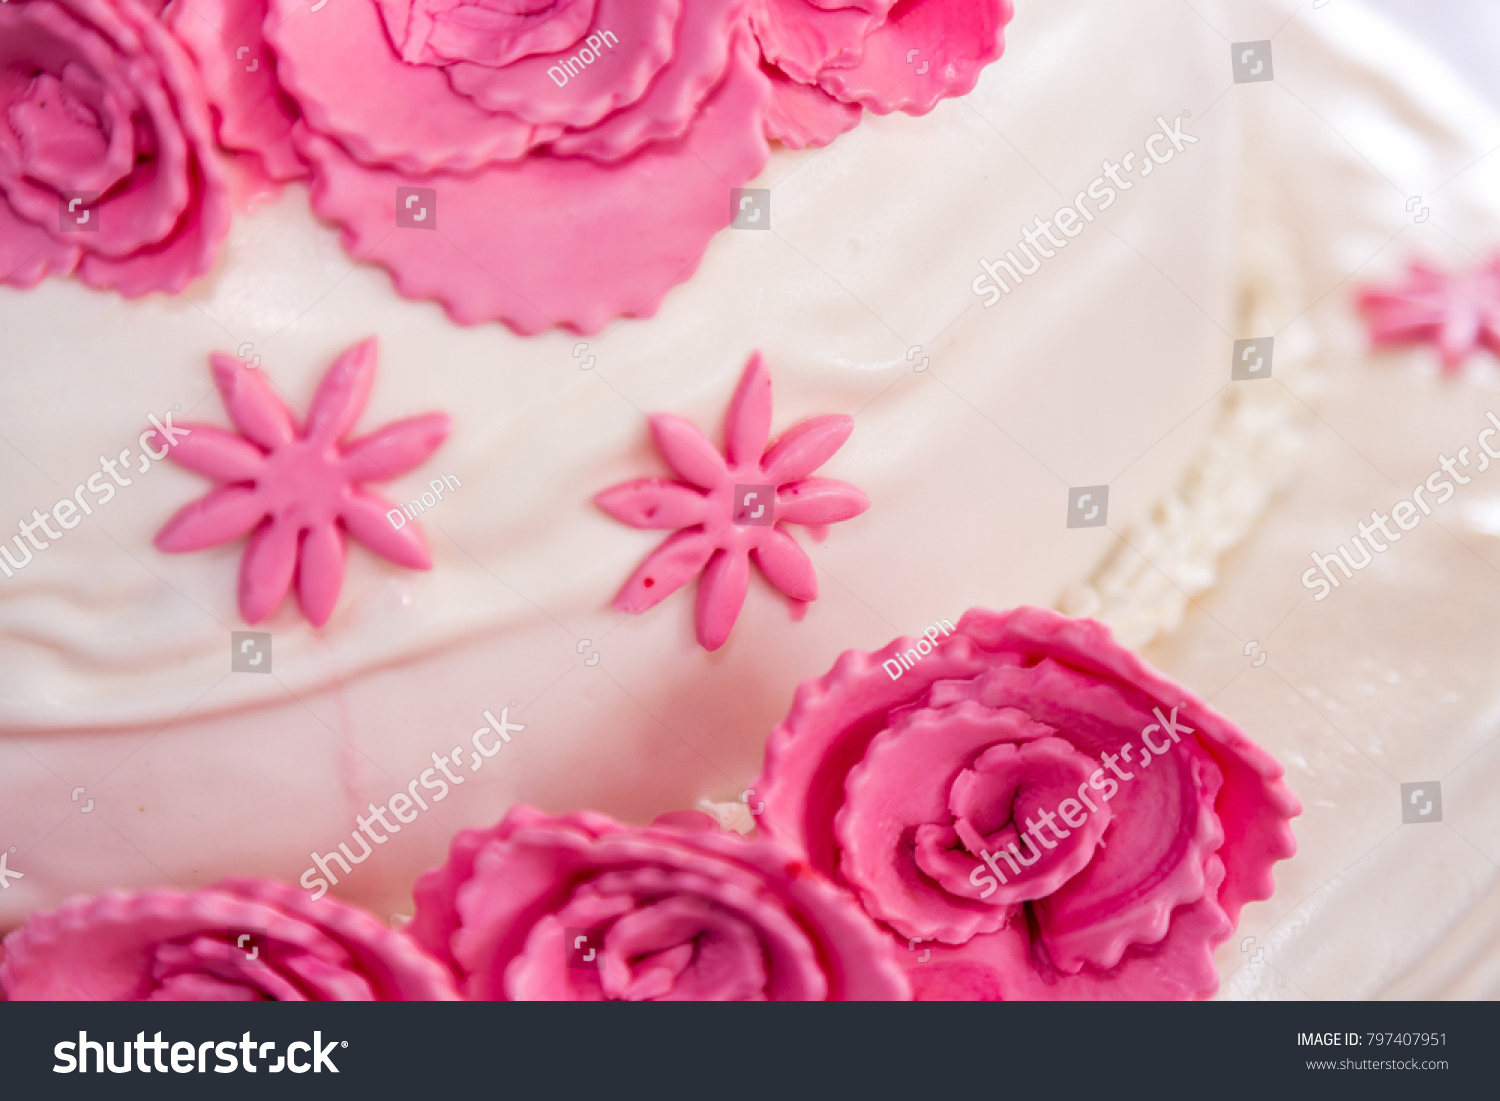 Cake Pink Floral Decoration Stock Photo (Royalty Free) 797407951 ...